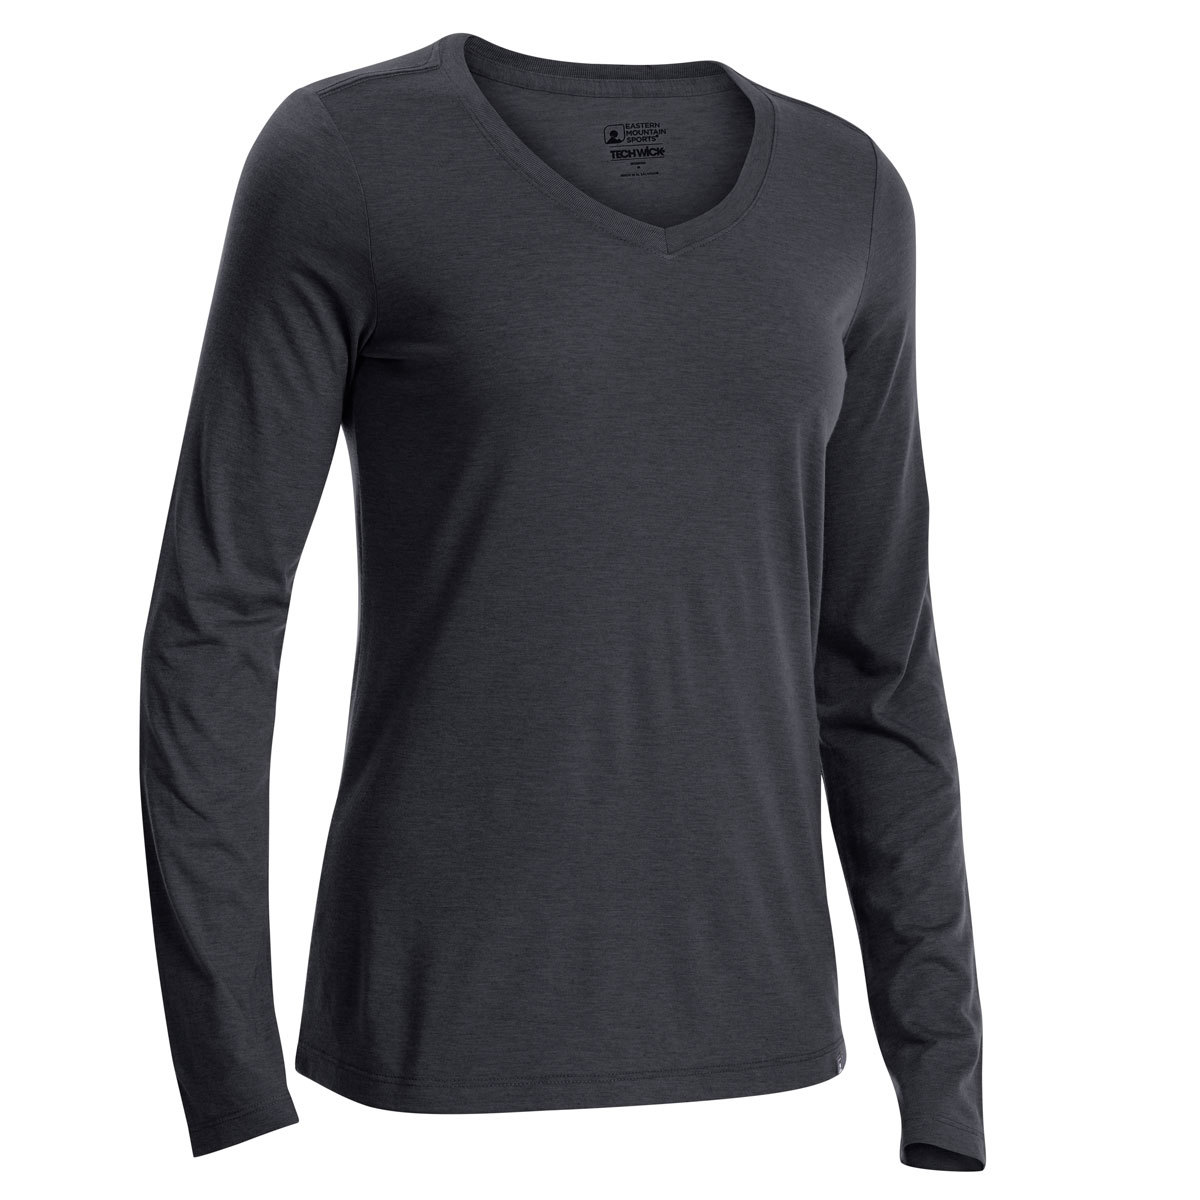 Ems Women's Techwick Vital V-Neck Long-Sleeve Tee - Black, XL